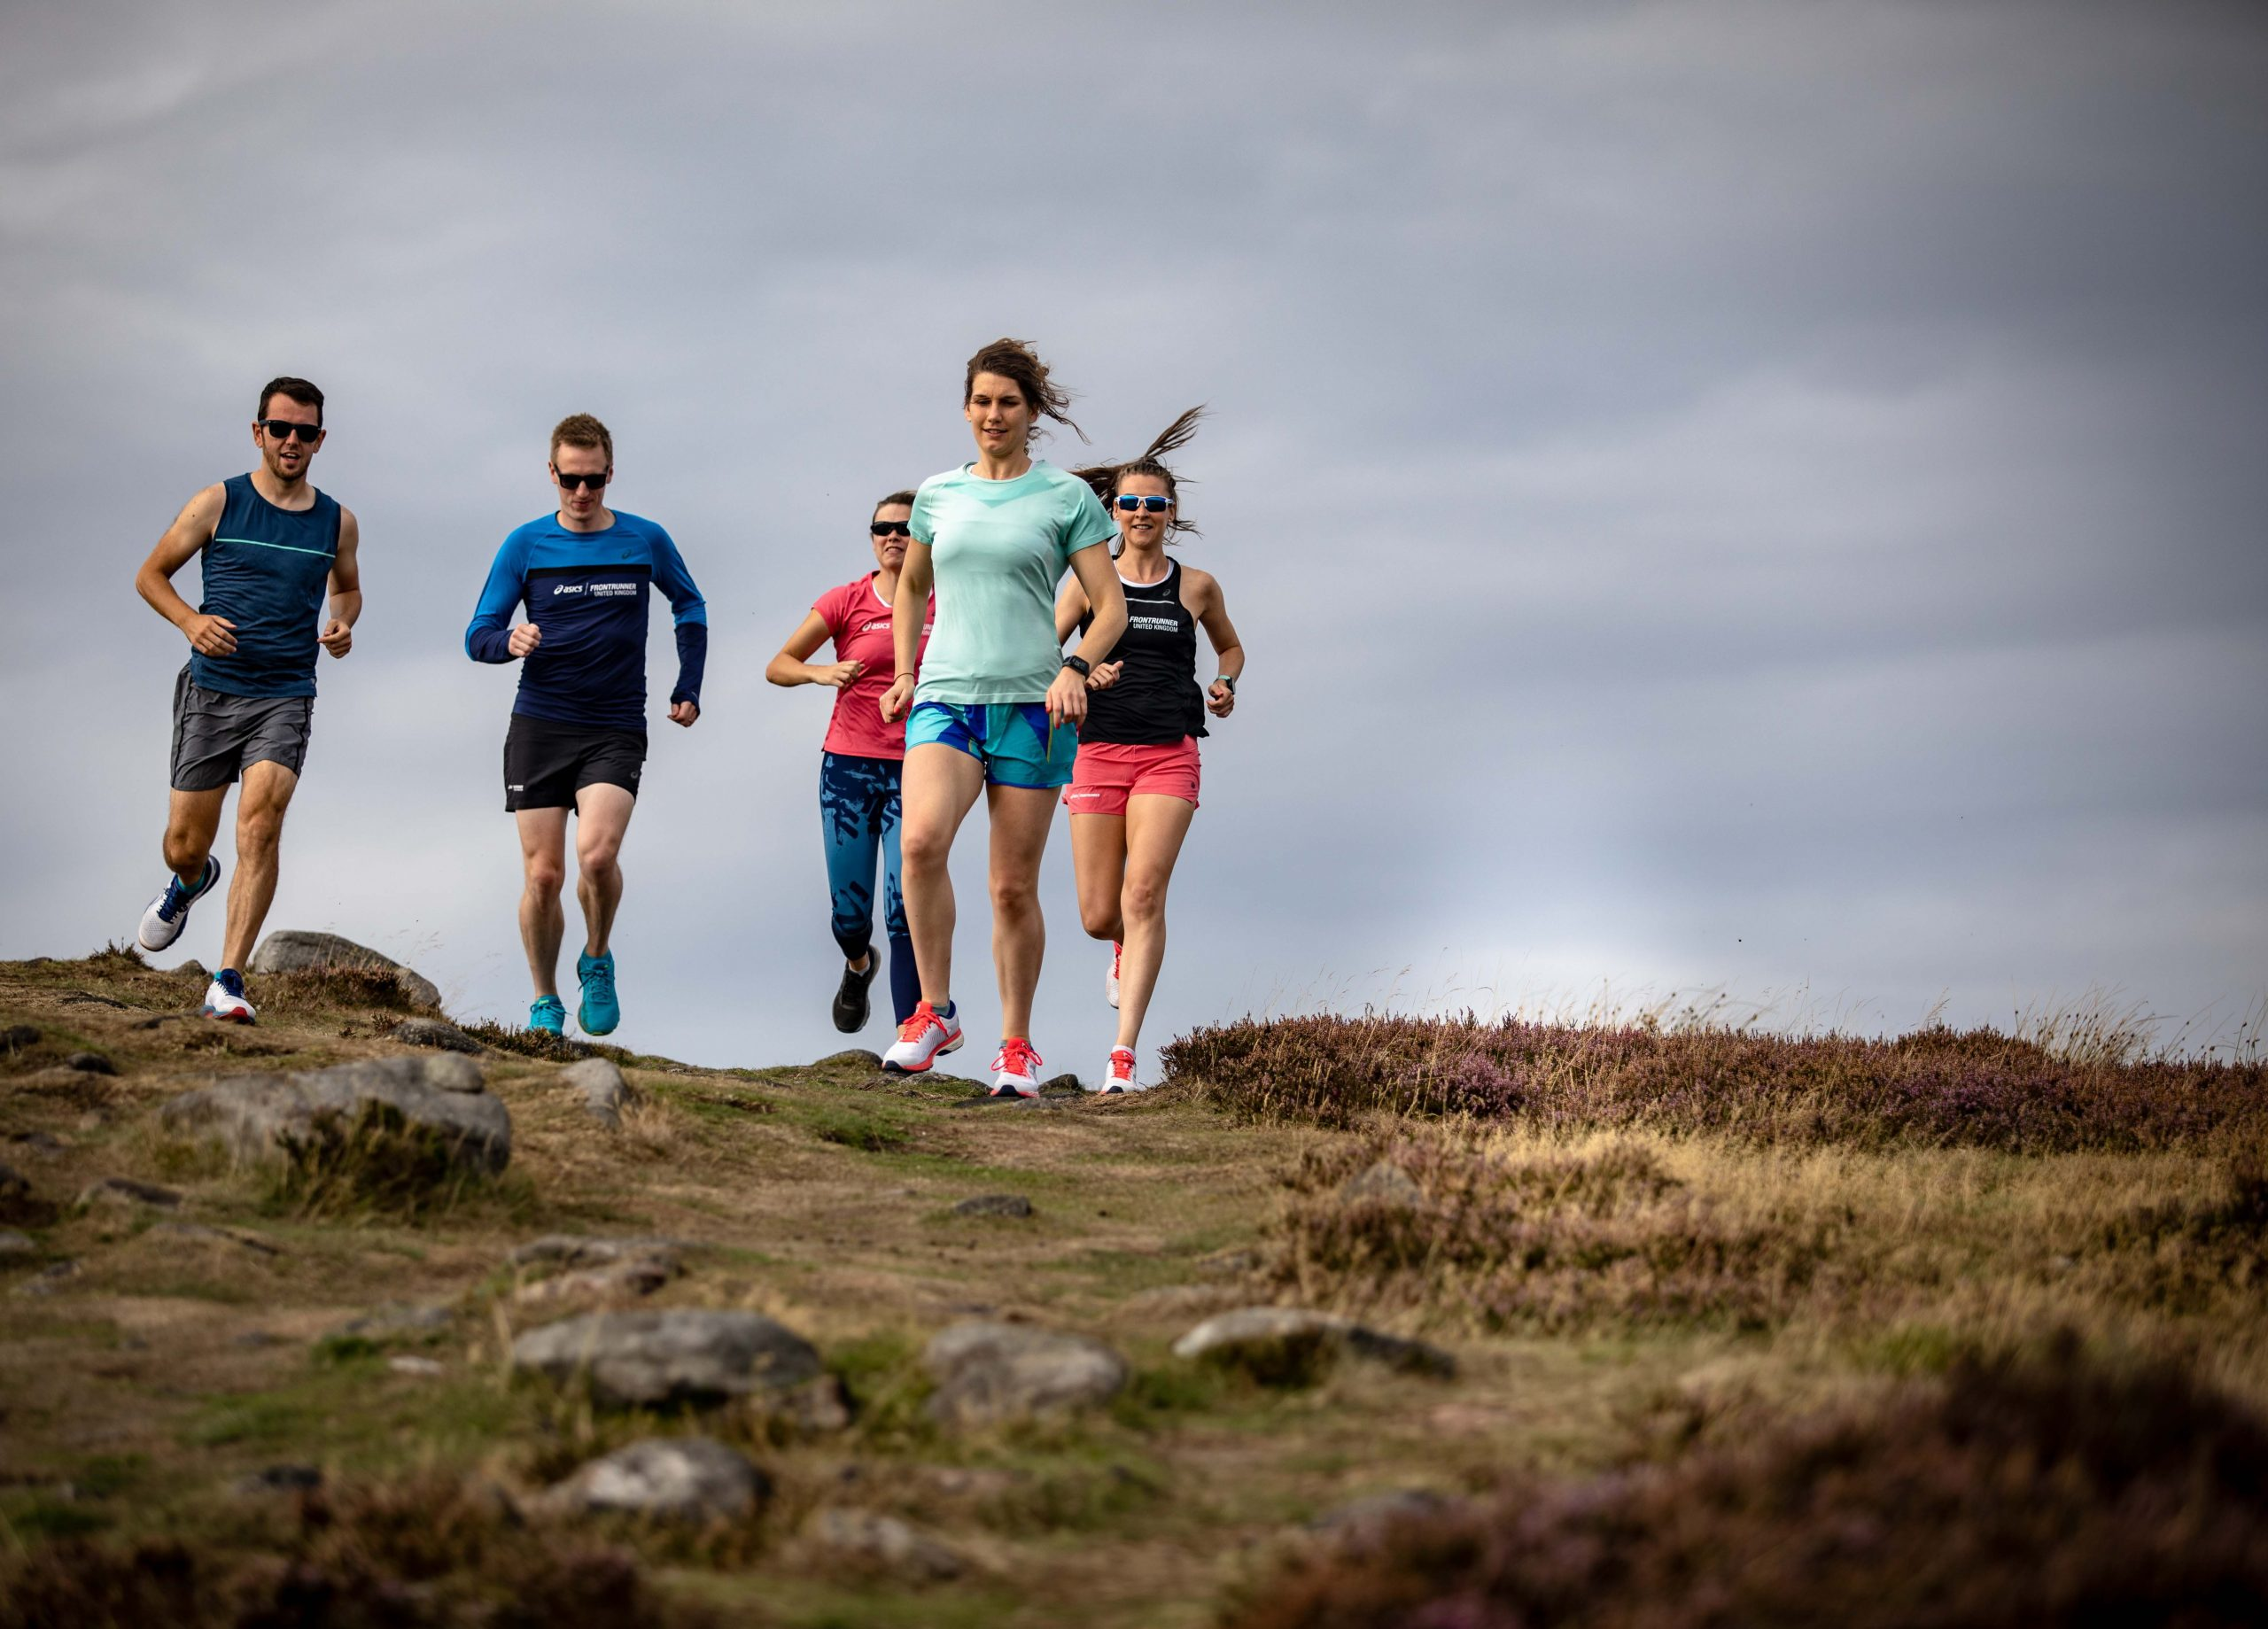 New: The Inaugural 2020 Greystoke 10K Trail Race